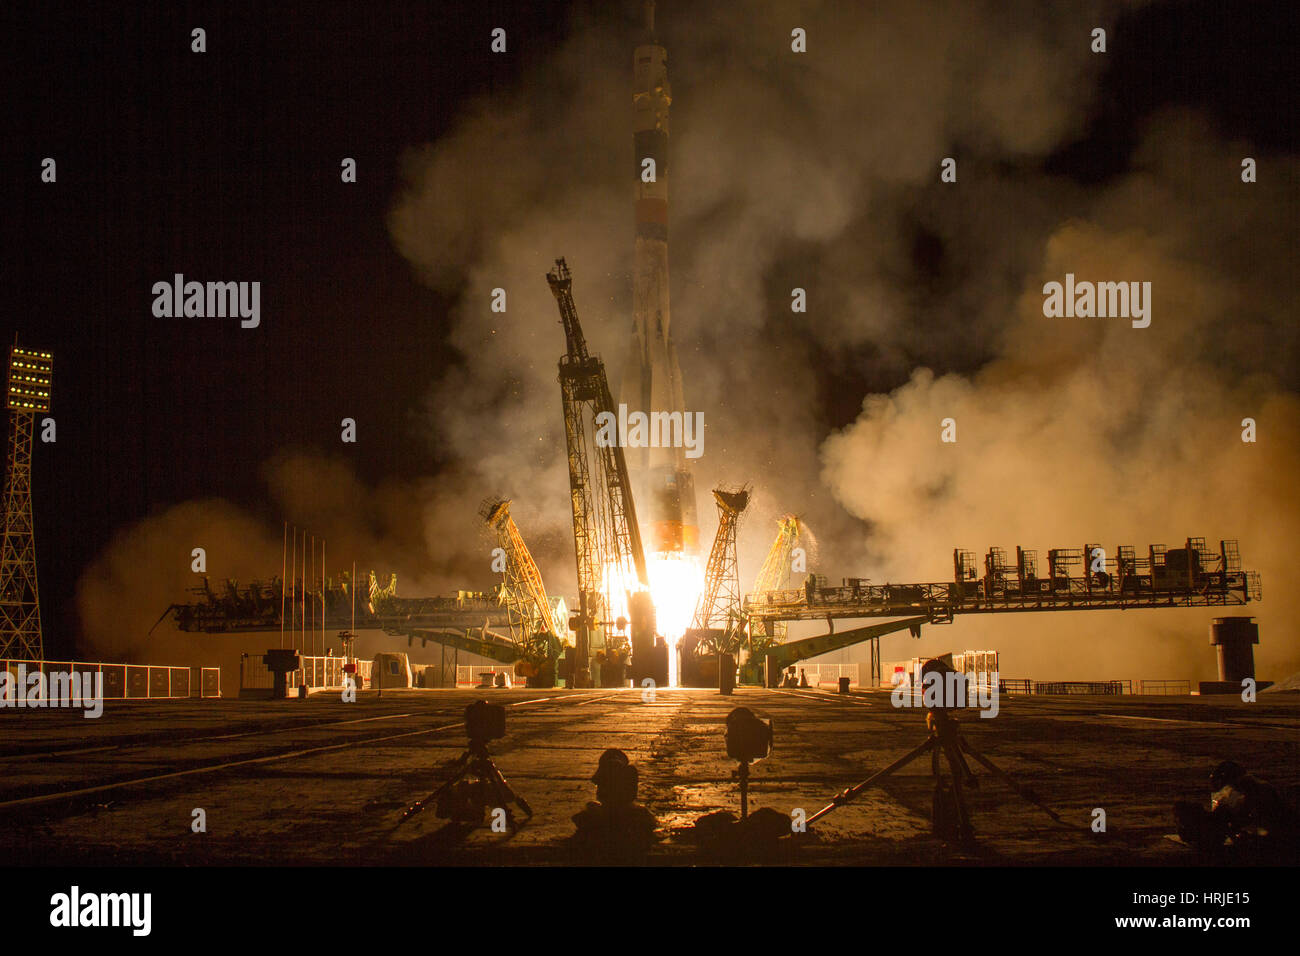 Expedition 37 Launch - Stock Image